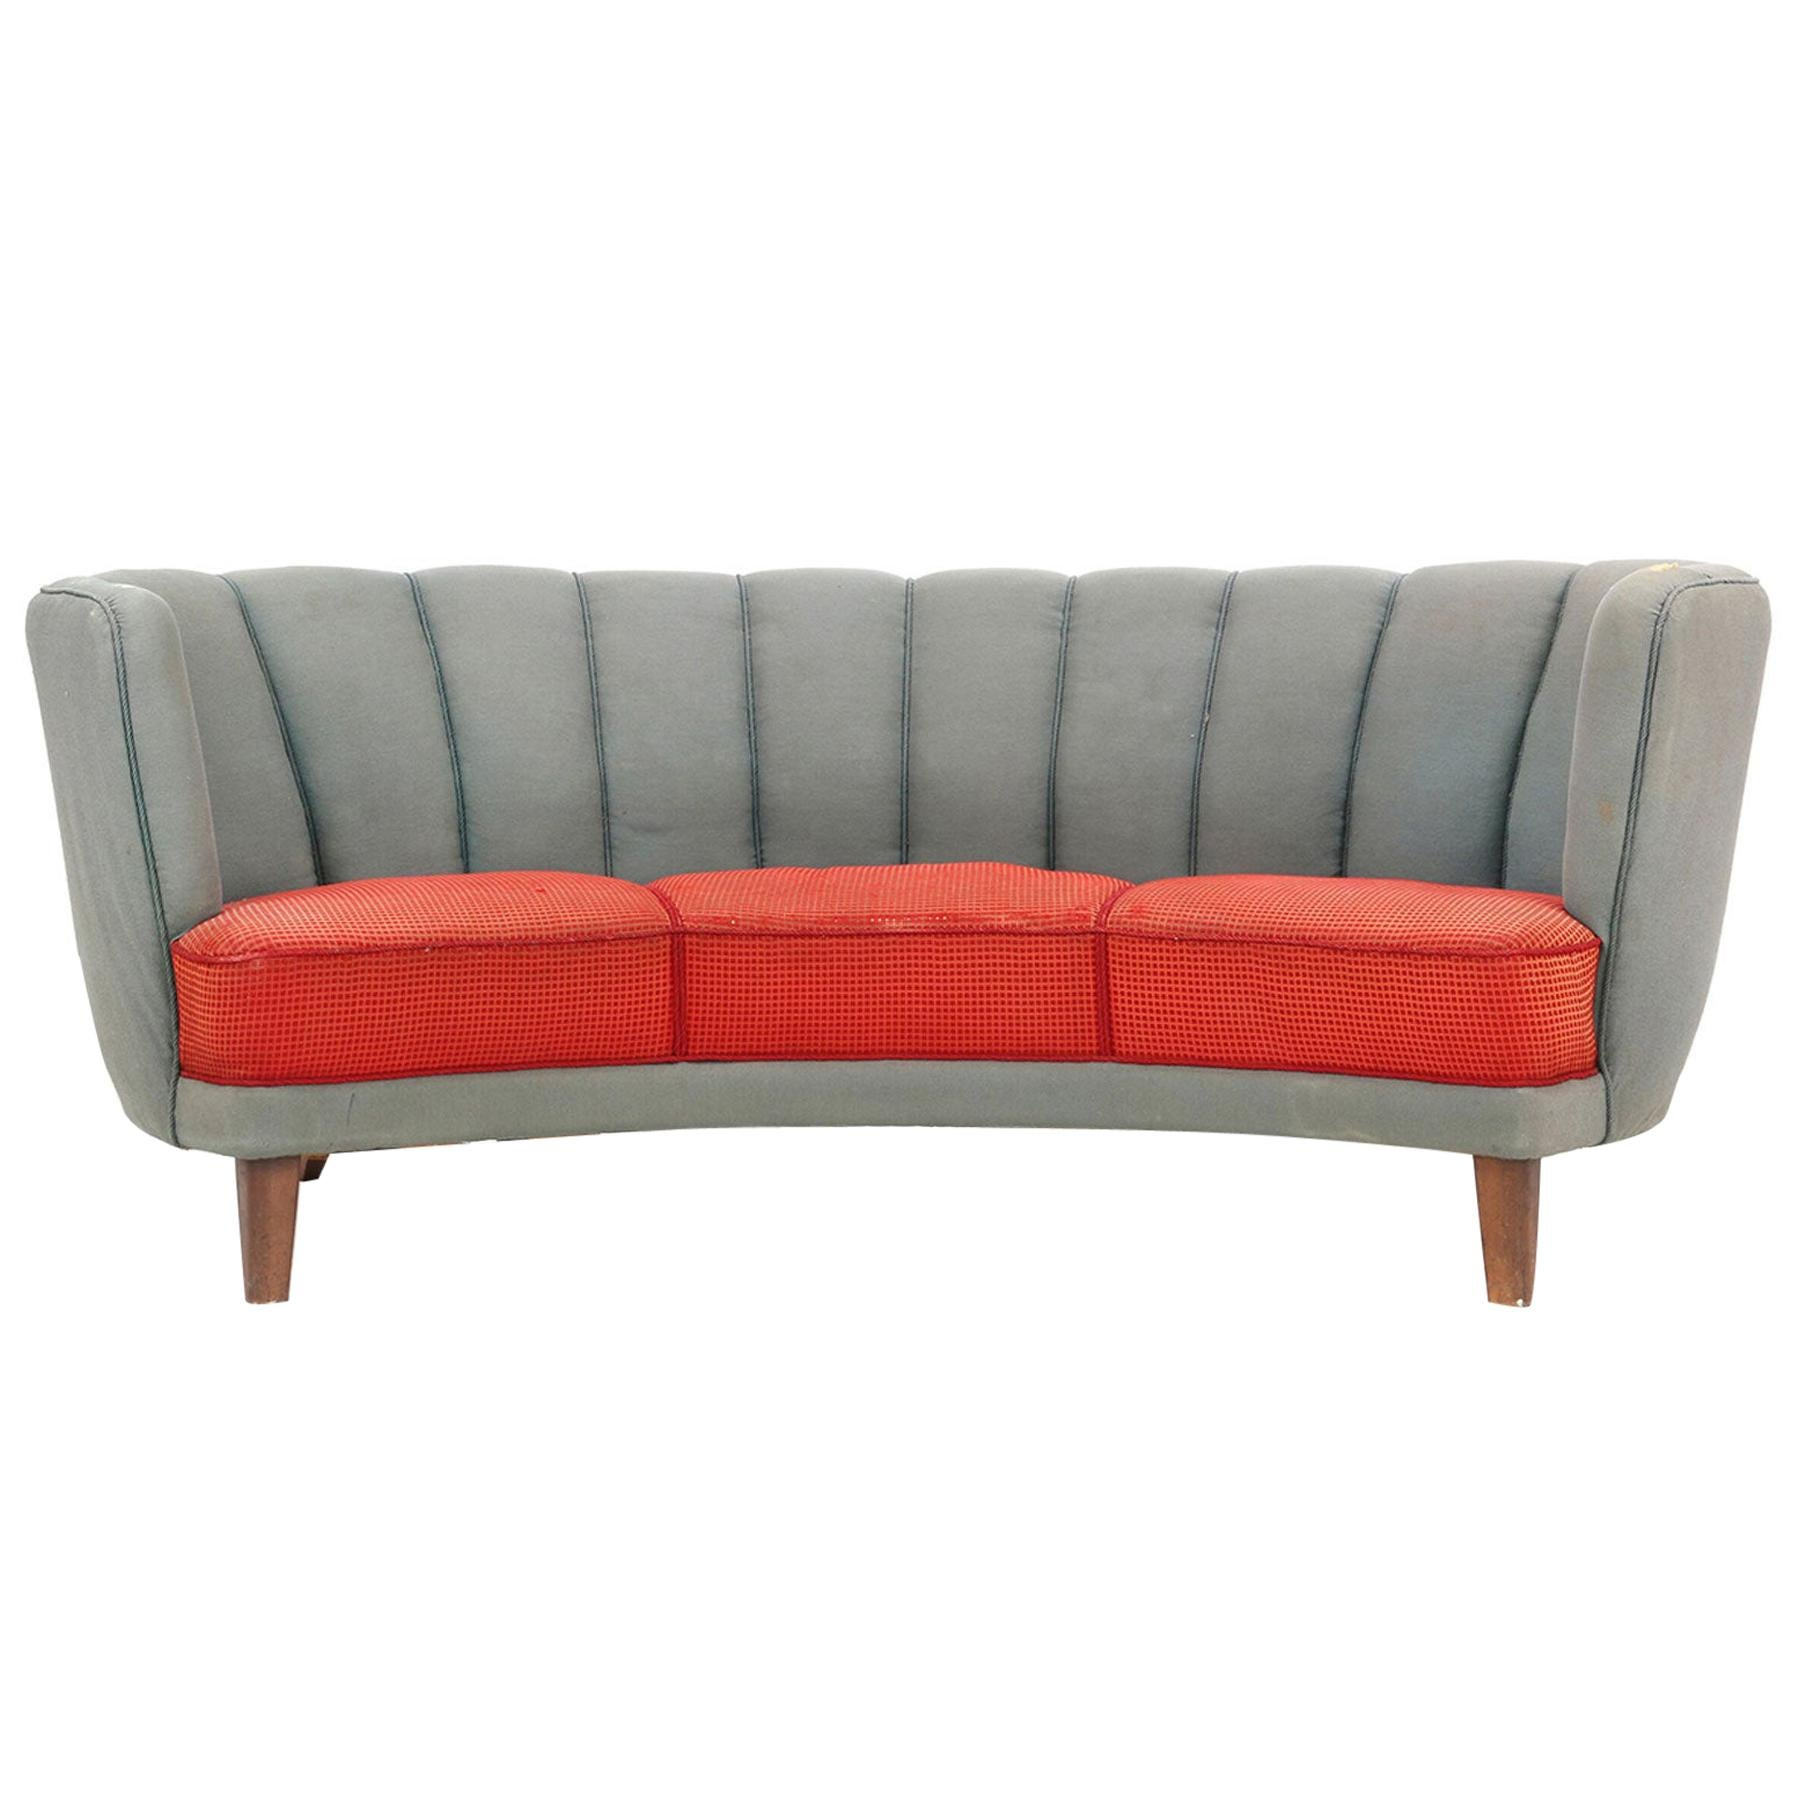 1940s Danish Modern Curved Banana Sofa in Red and Blue Wool